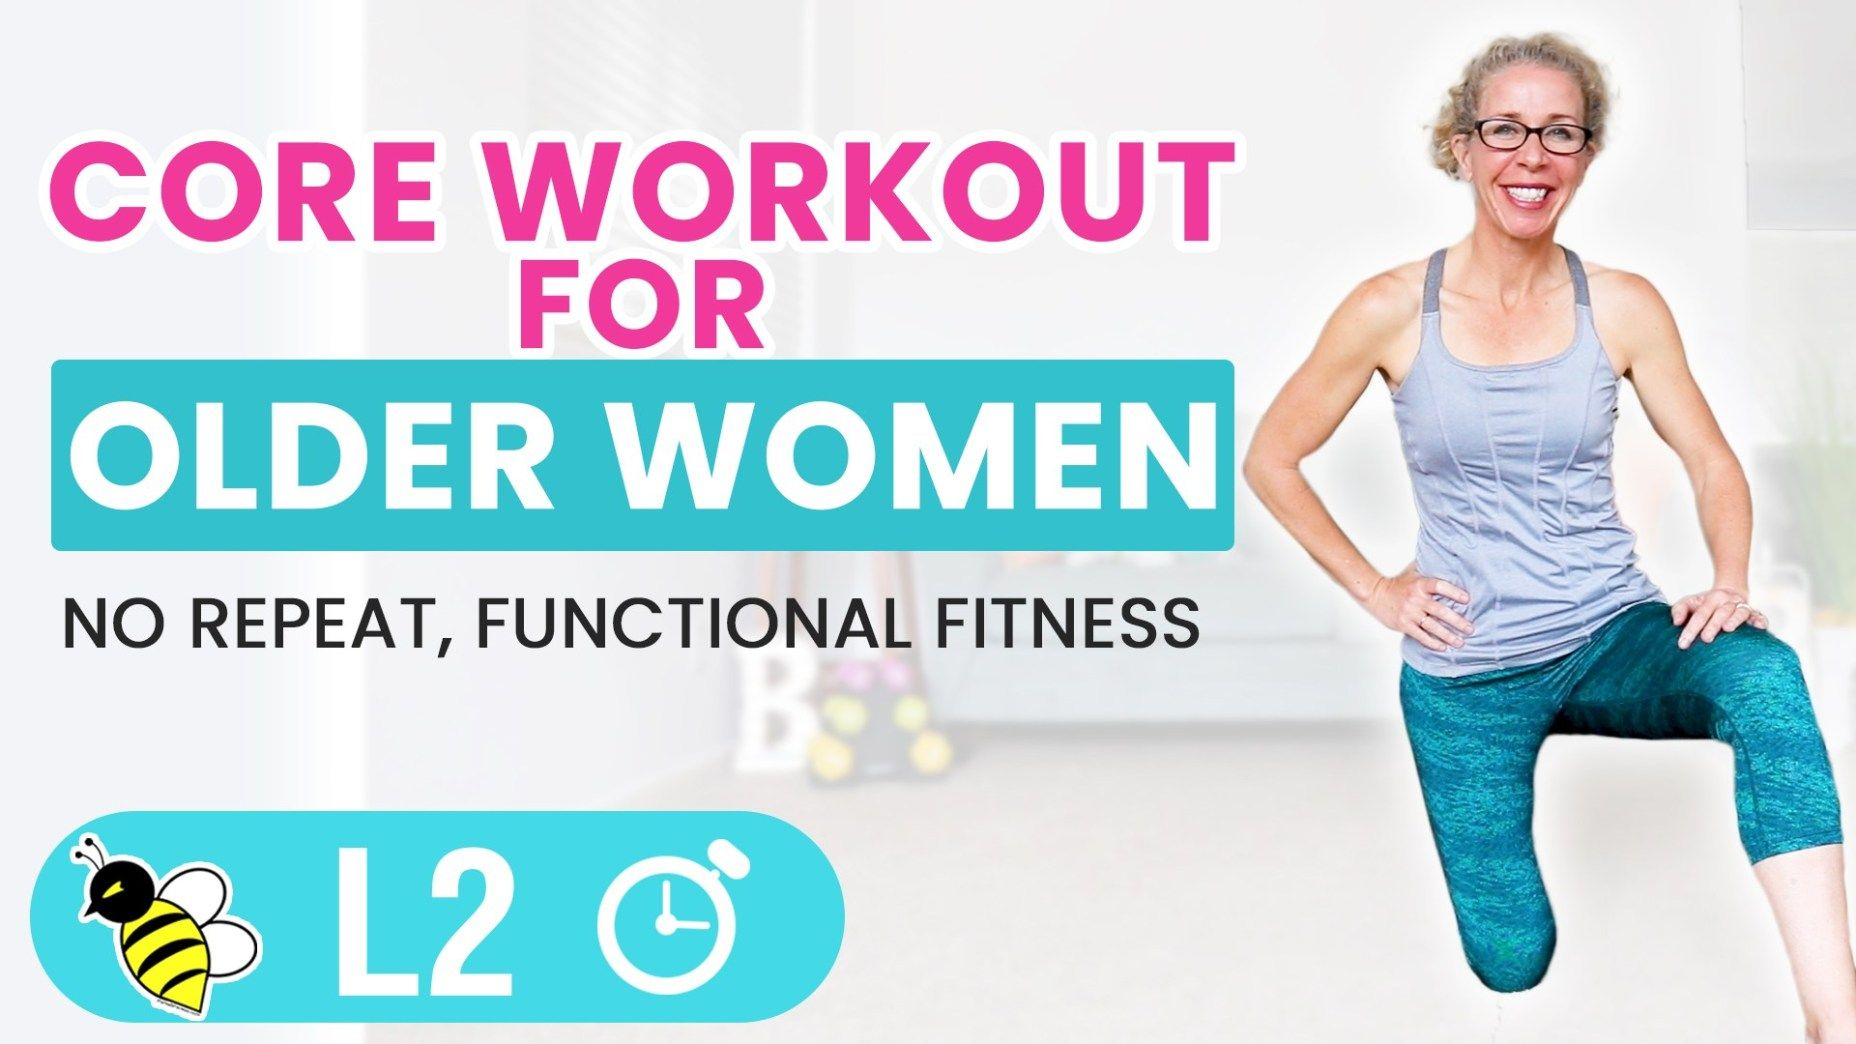 Empowering core workout for older women workout programs